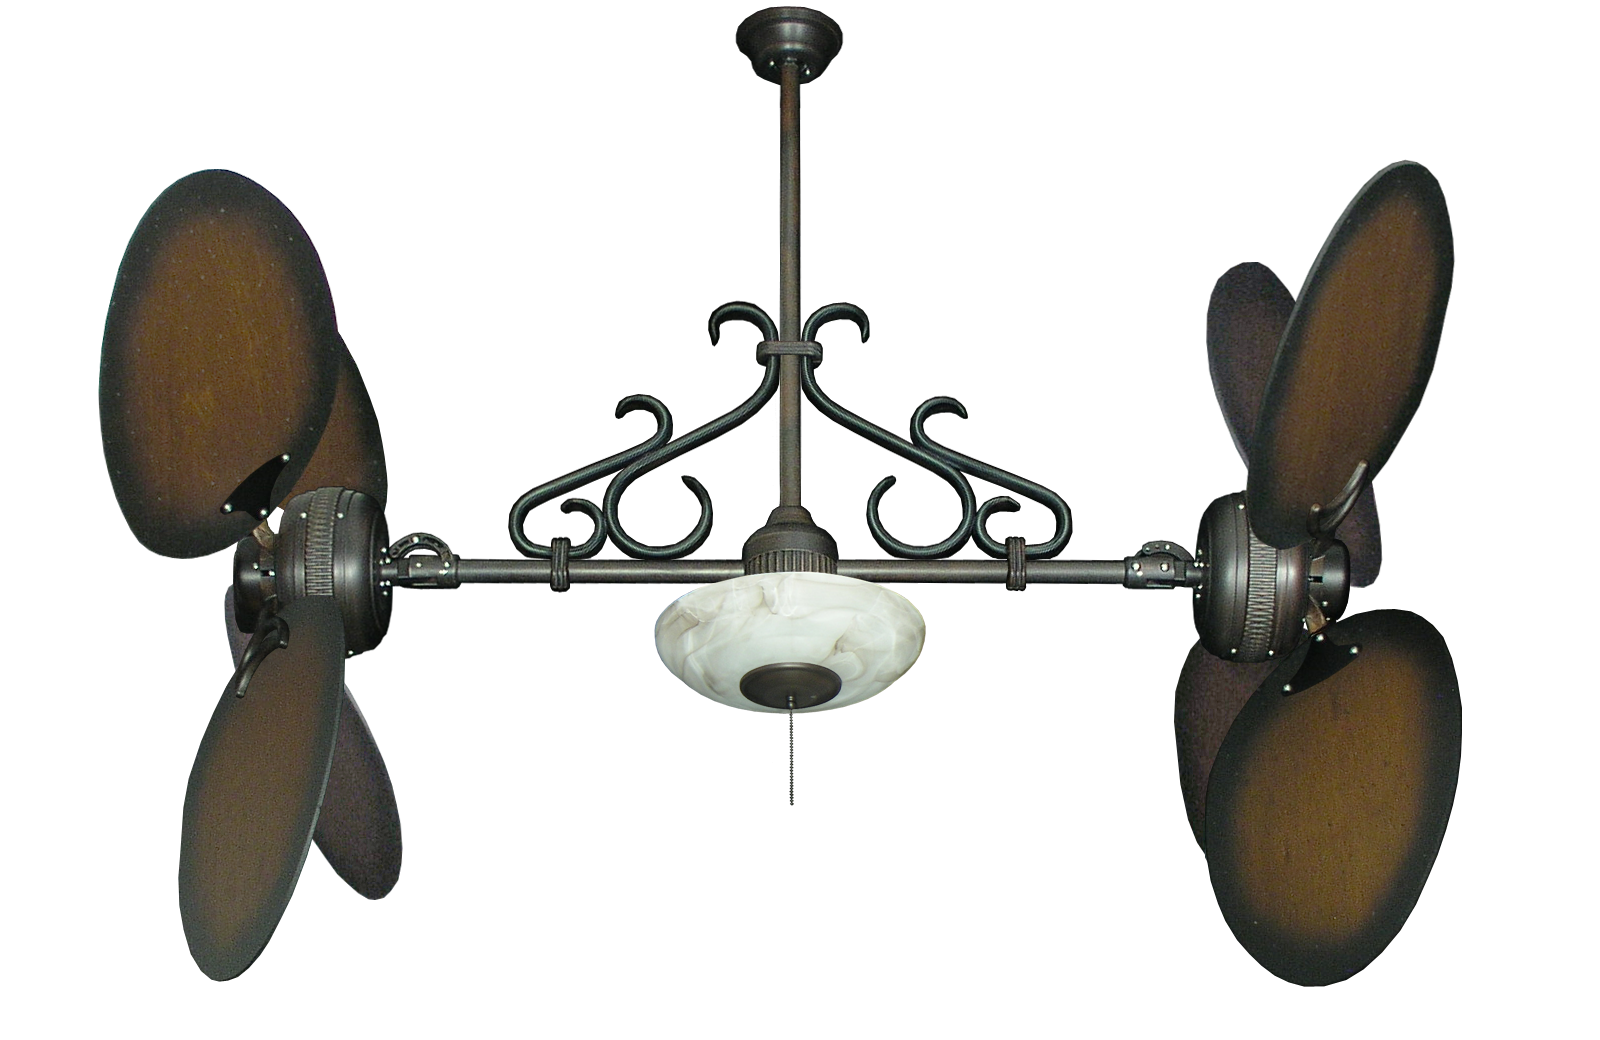 Win Star Ii Oil Rubbed Bronze Dual Ceiling Fan With 50 Large Oval Blades Distressed Walnut Finish 171 Light And Scroll